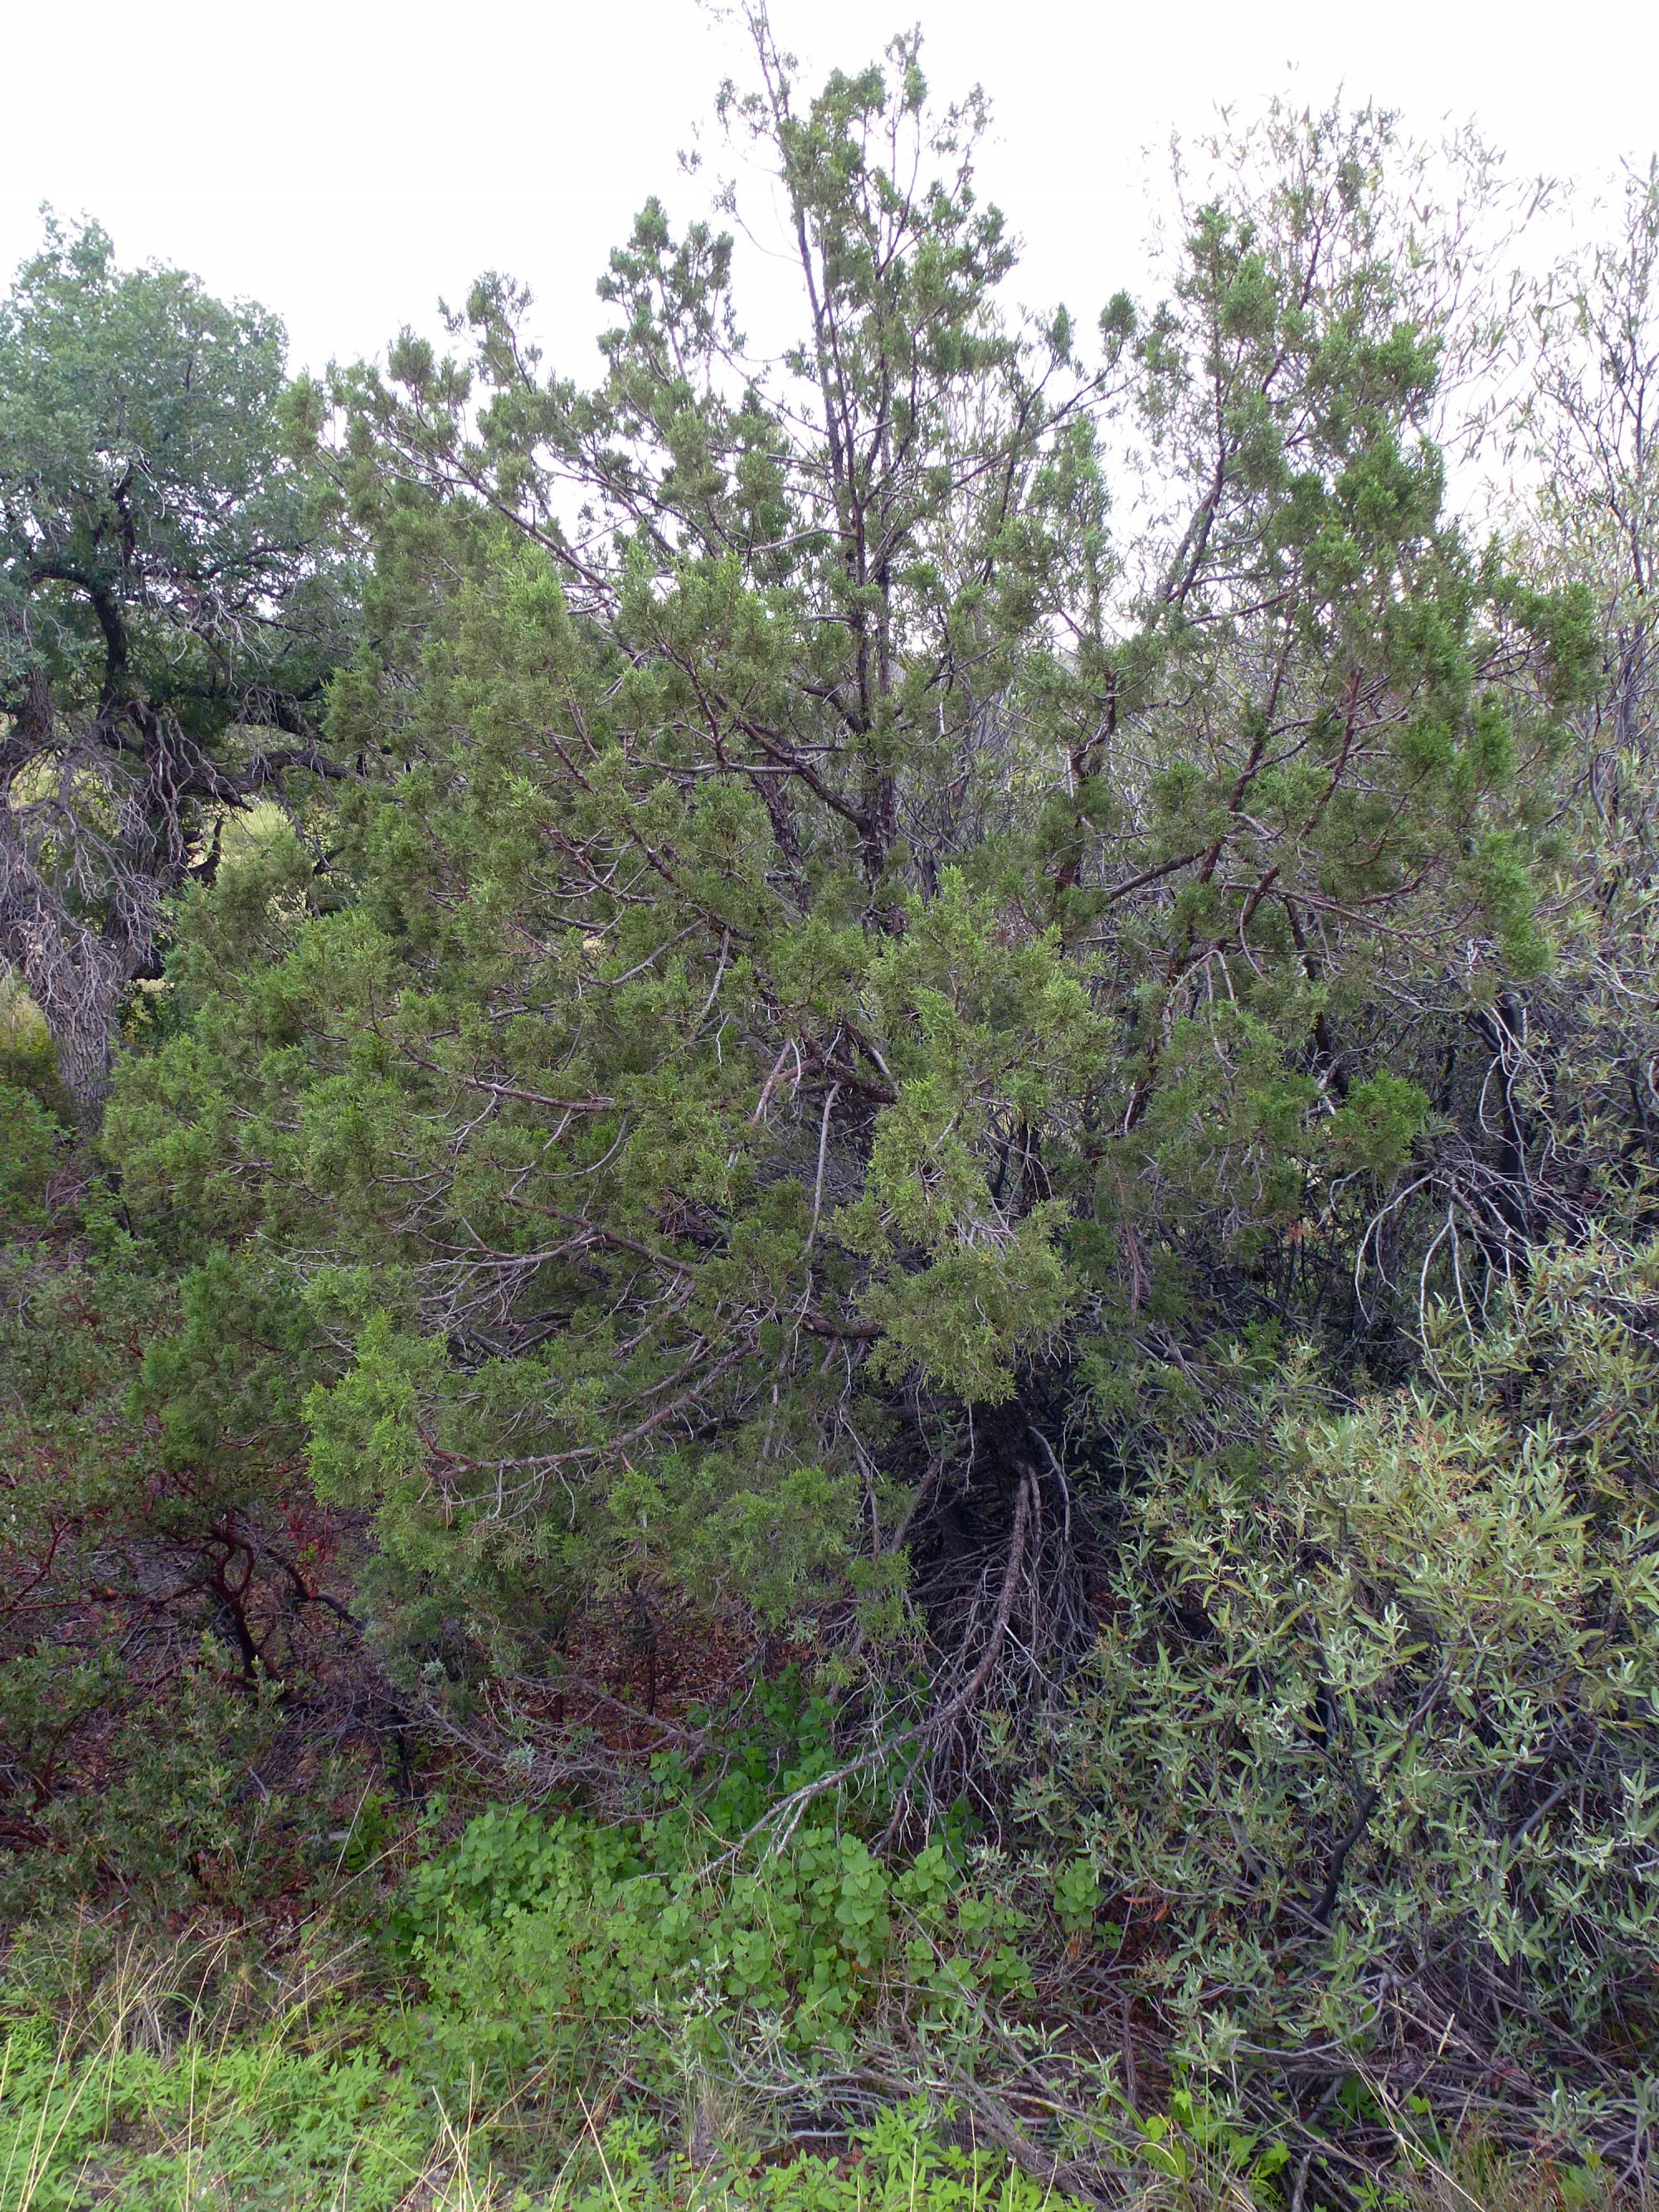 Today, living alligator juniper first begin to make an appearance on upland slopes of the Catalina Mountains at around 5000 feet elevation...